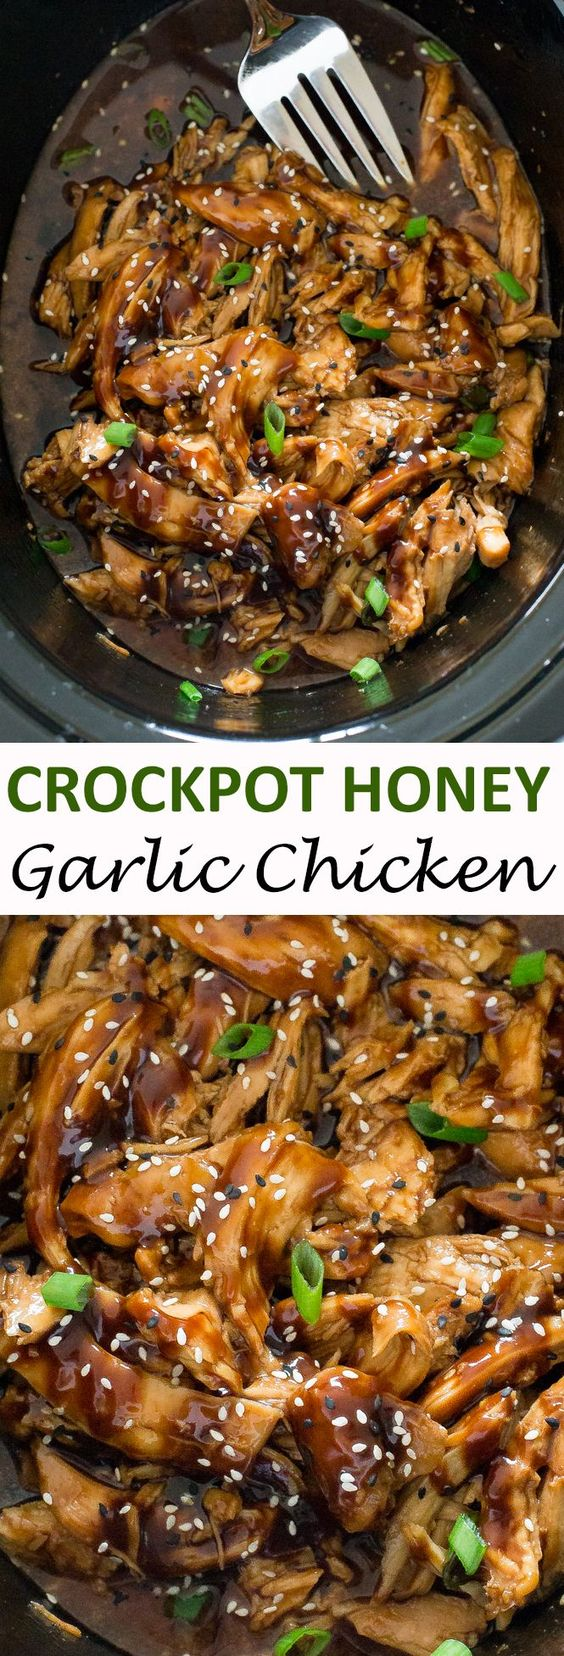 Slow Cooker Honey Garlic Chicken. Slow cooked chicken in a sweet and tangy Asian inspired sauce.   chefsavvy.com